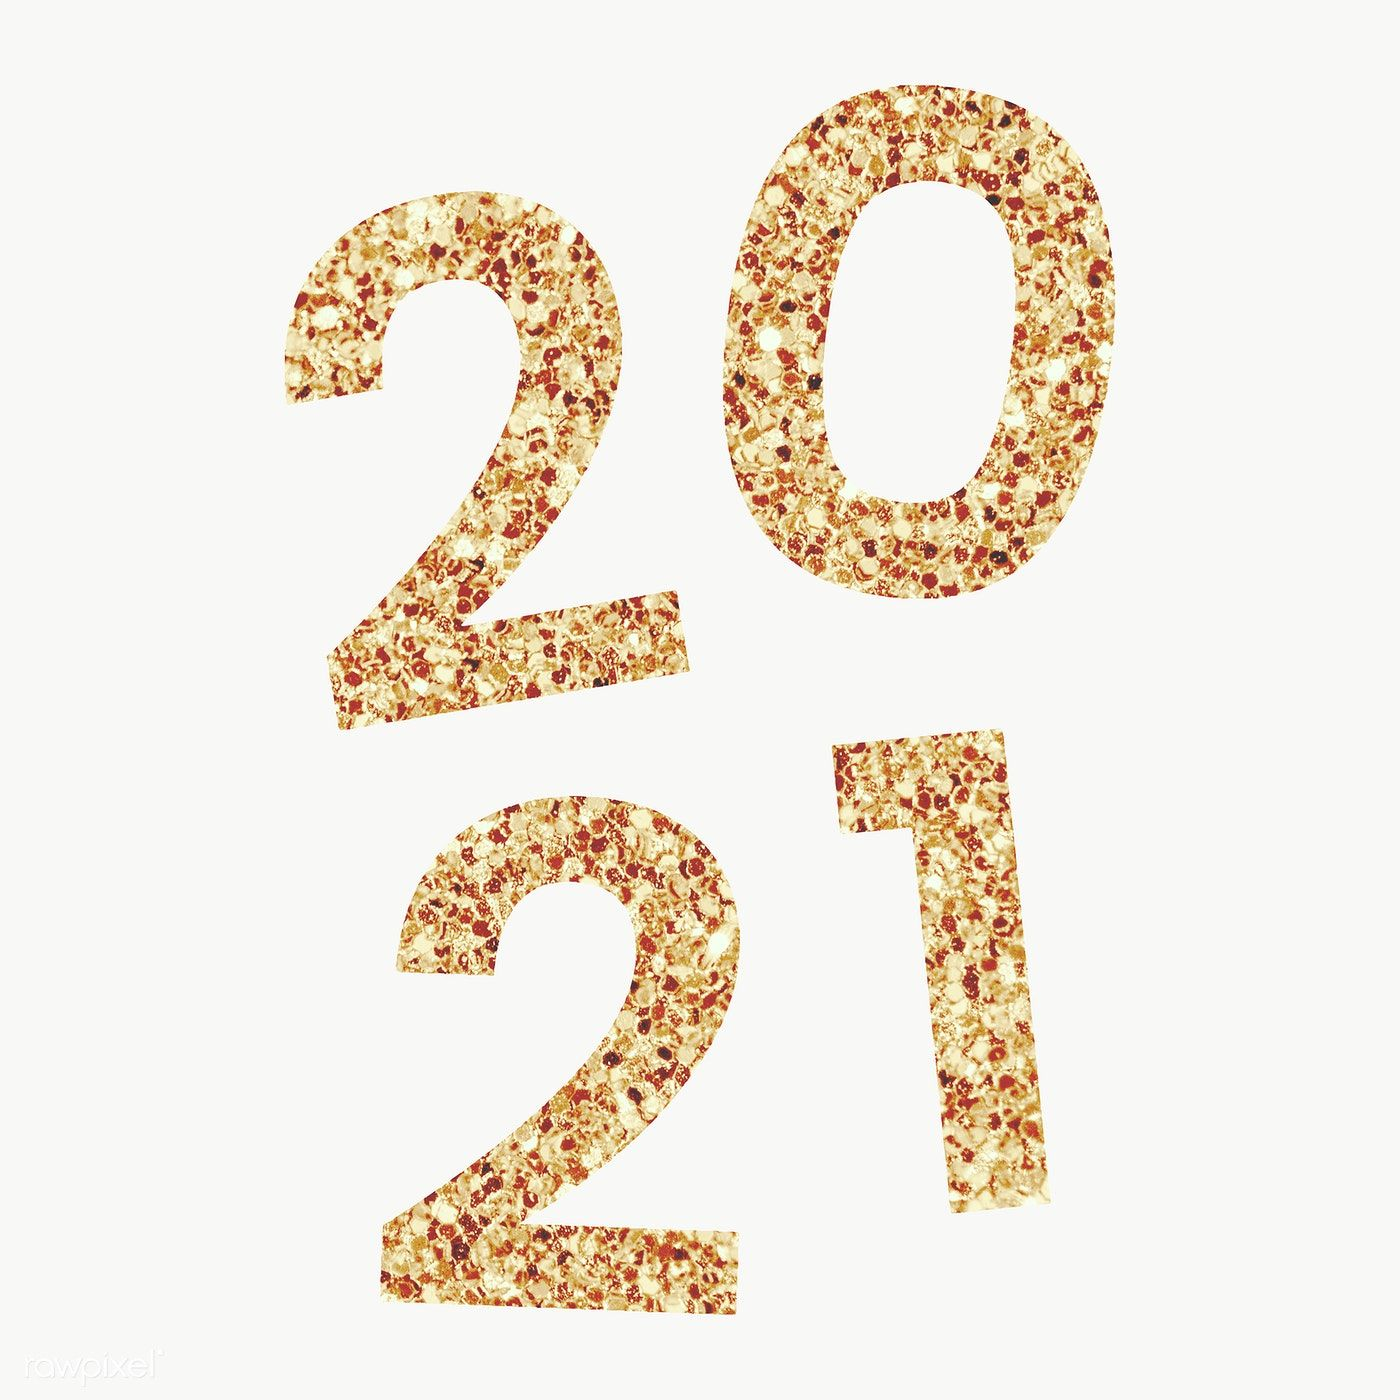 Festive Golden Shimmering 2021 Transparent Png Free Image By Rawpixel Com Ningzk V Happy New Year Wallpaper New Year Wallpaper Alphabet Wallpaper